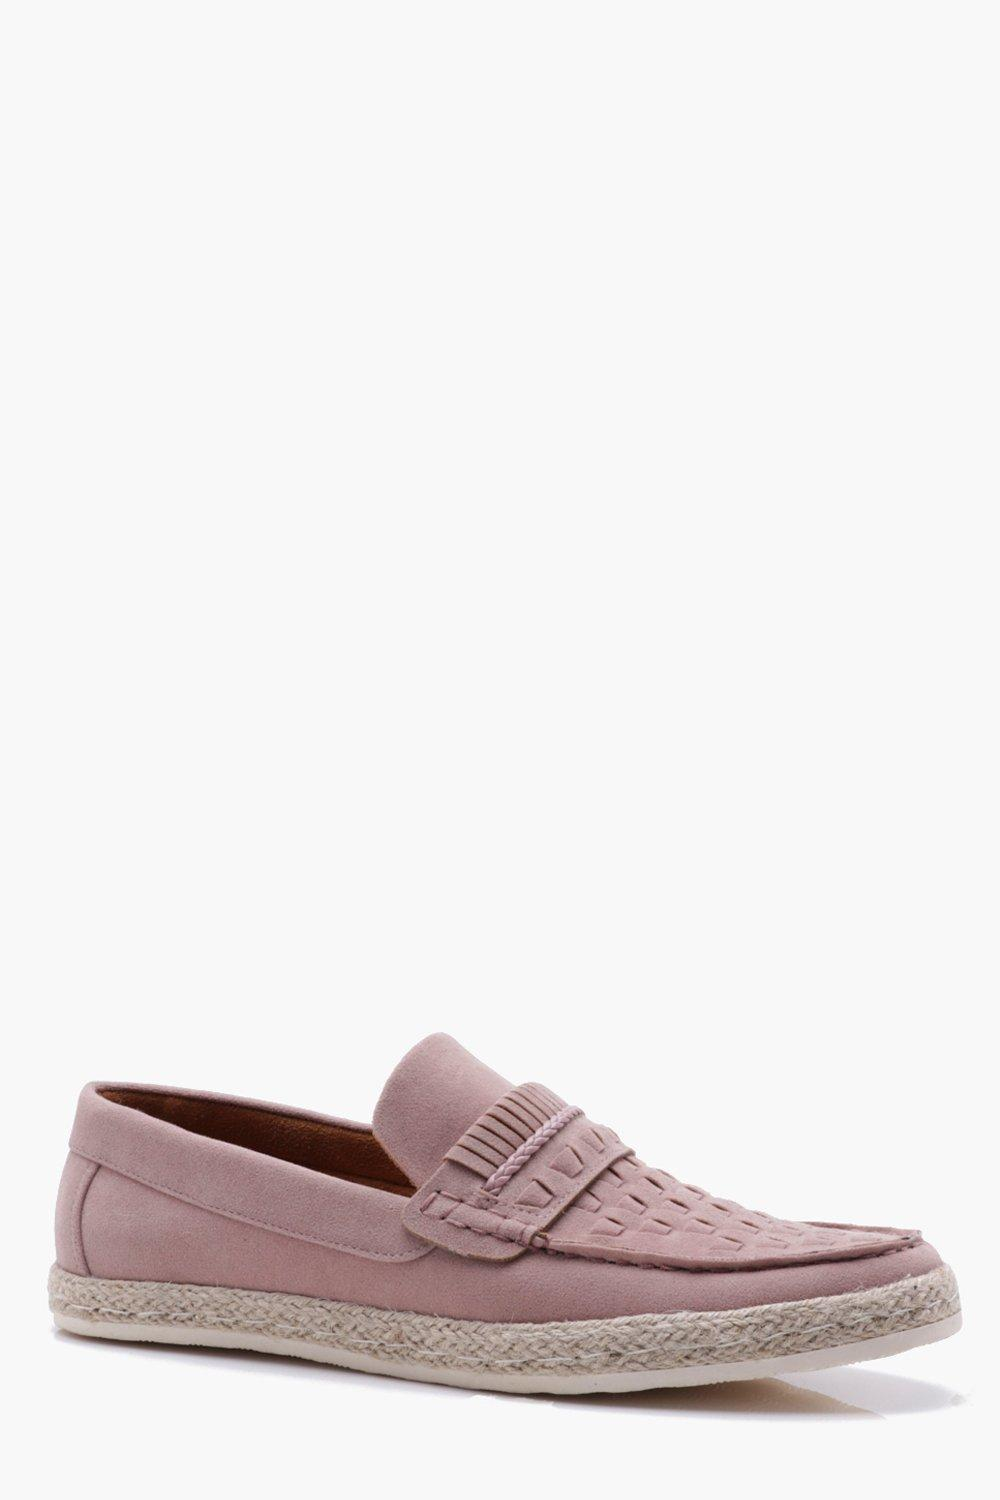 boohooMAN weave loafers in pink free shipping classic for sale free shipping quality free shipping outlet affordable XG6RTbk